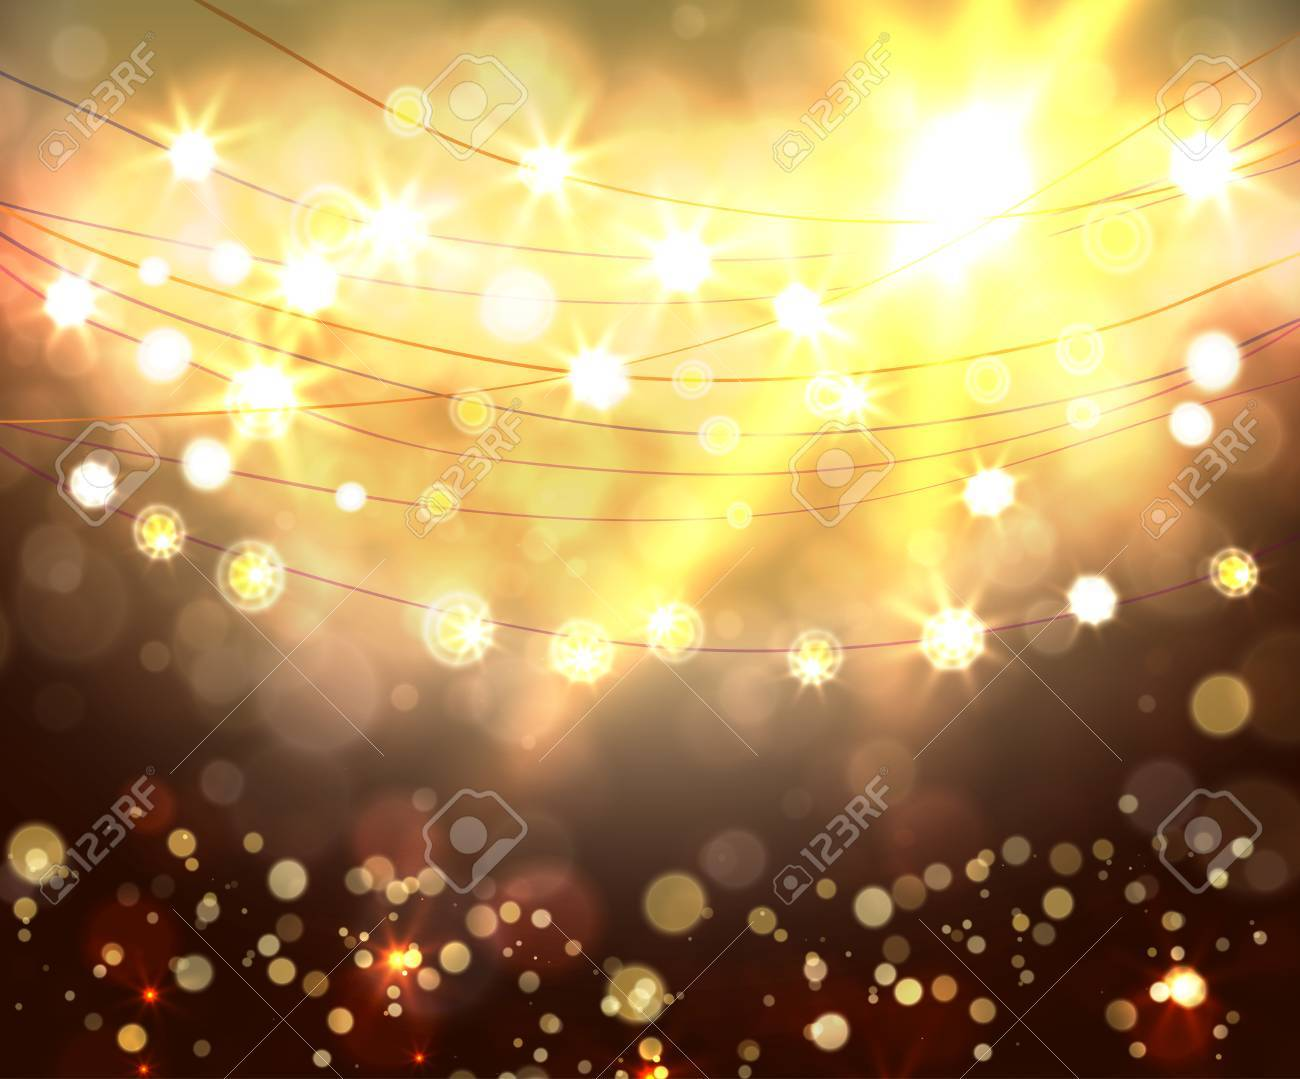 Festive light background with bokeh and stars, vector - 49151812